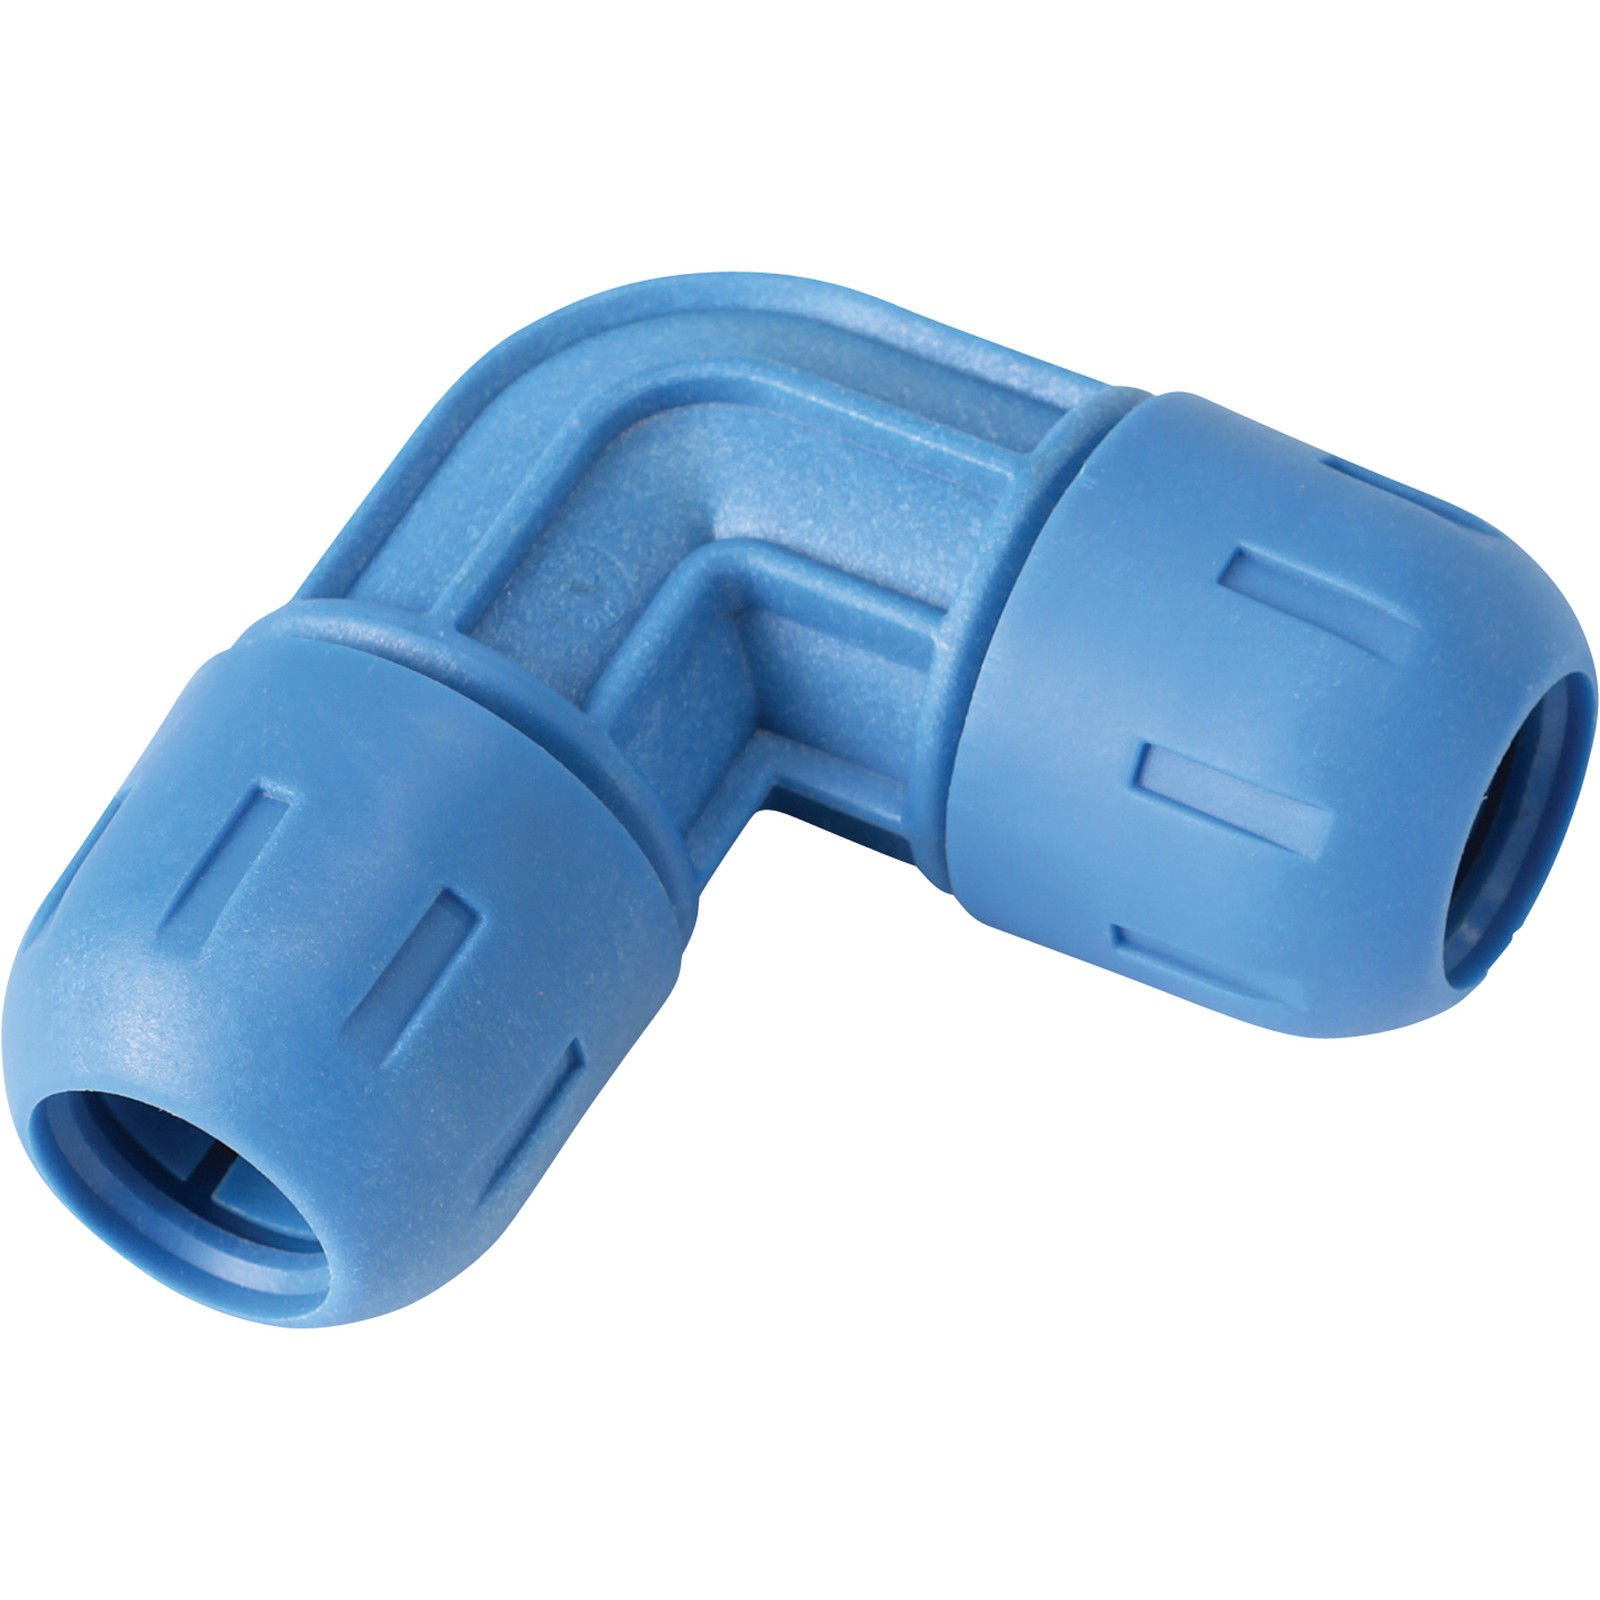 "3/4"" Rapid Air FastPipe 90-Degree Elbow Fitting Quality Compressed Air Piping"